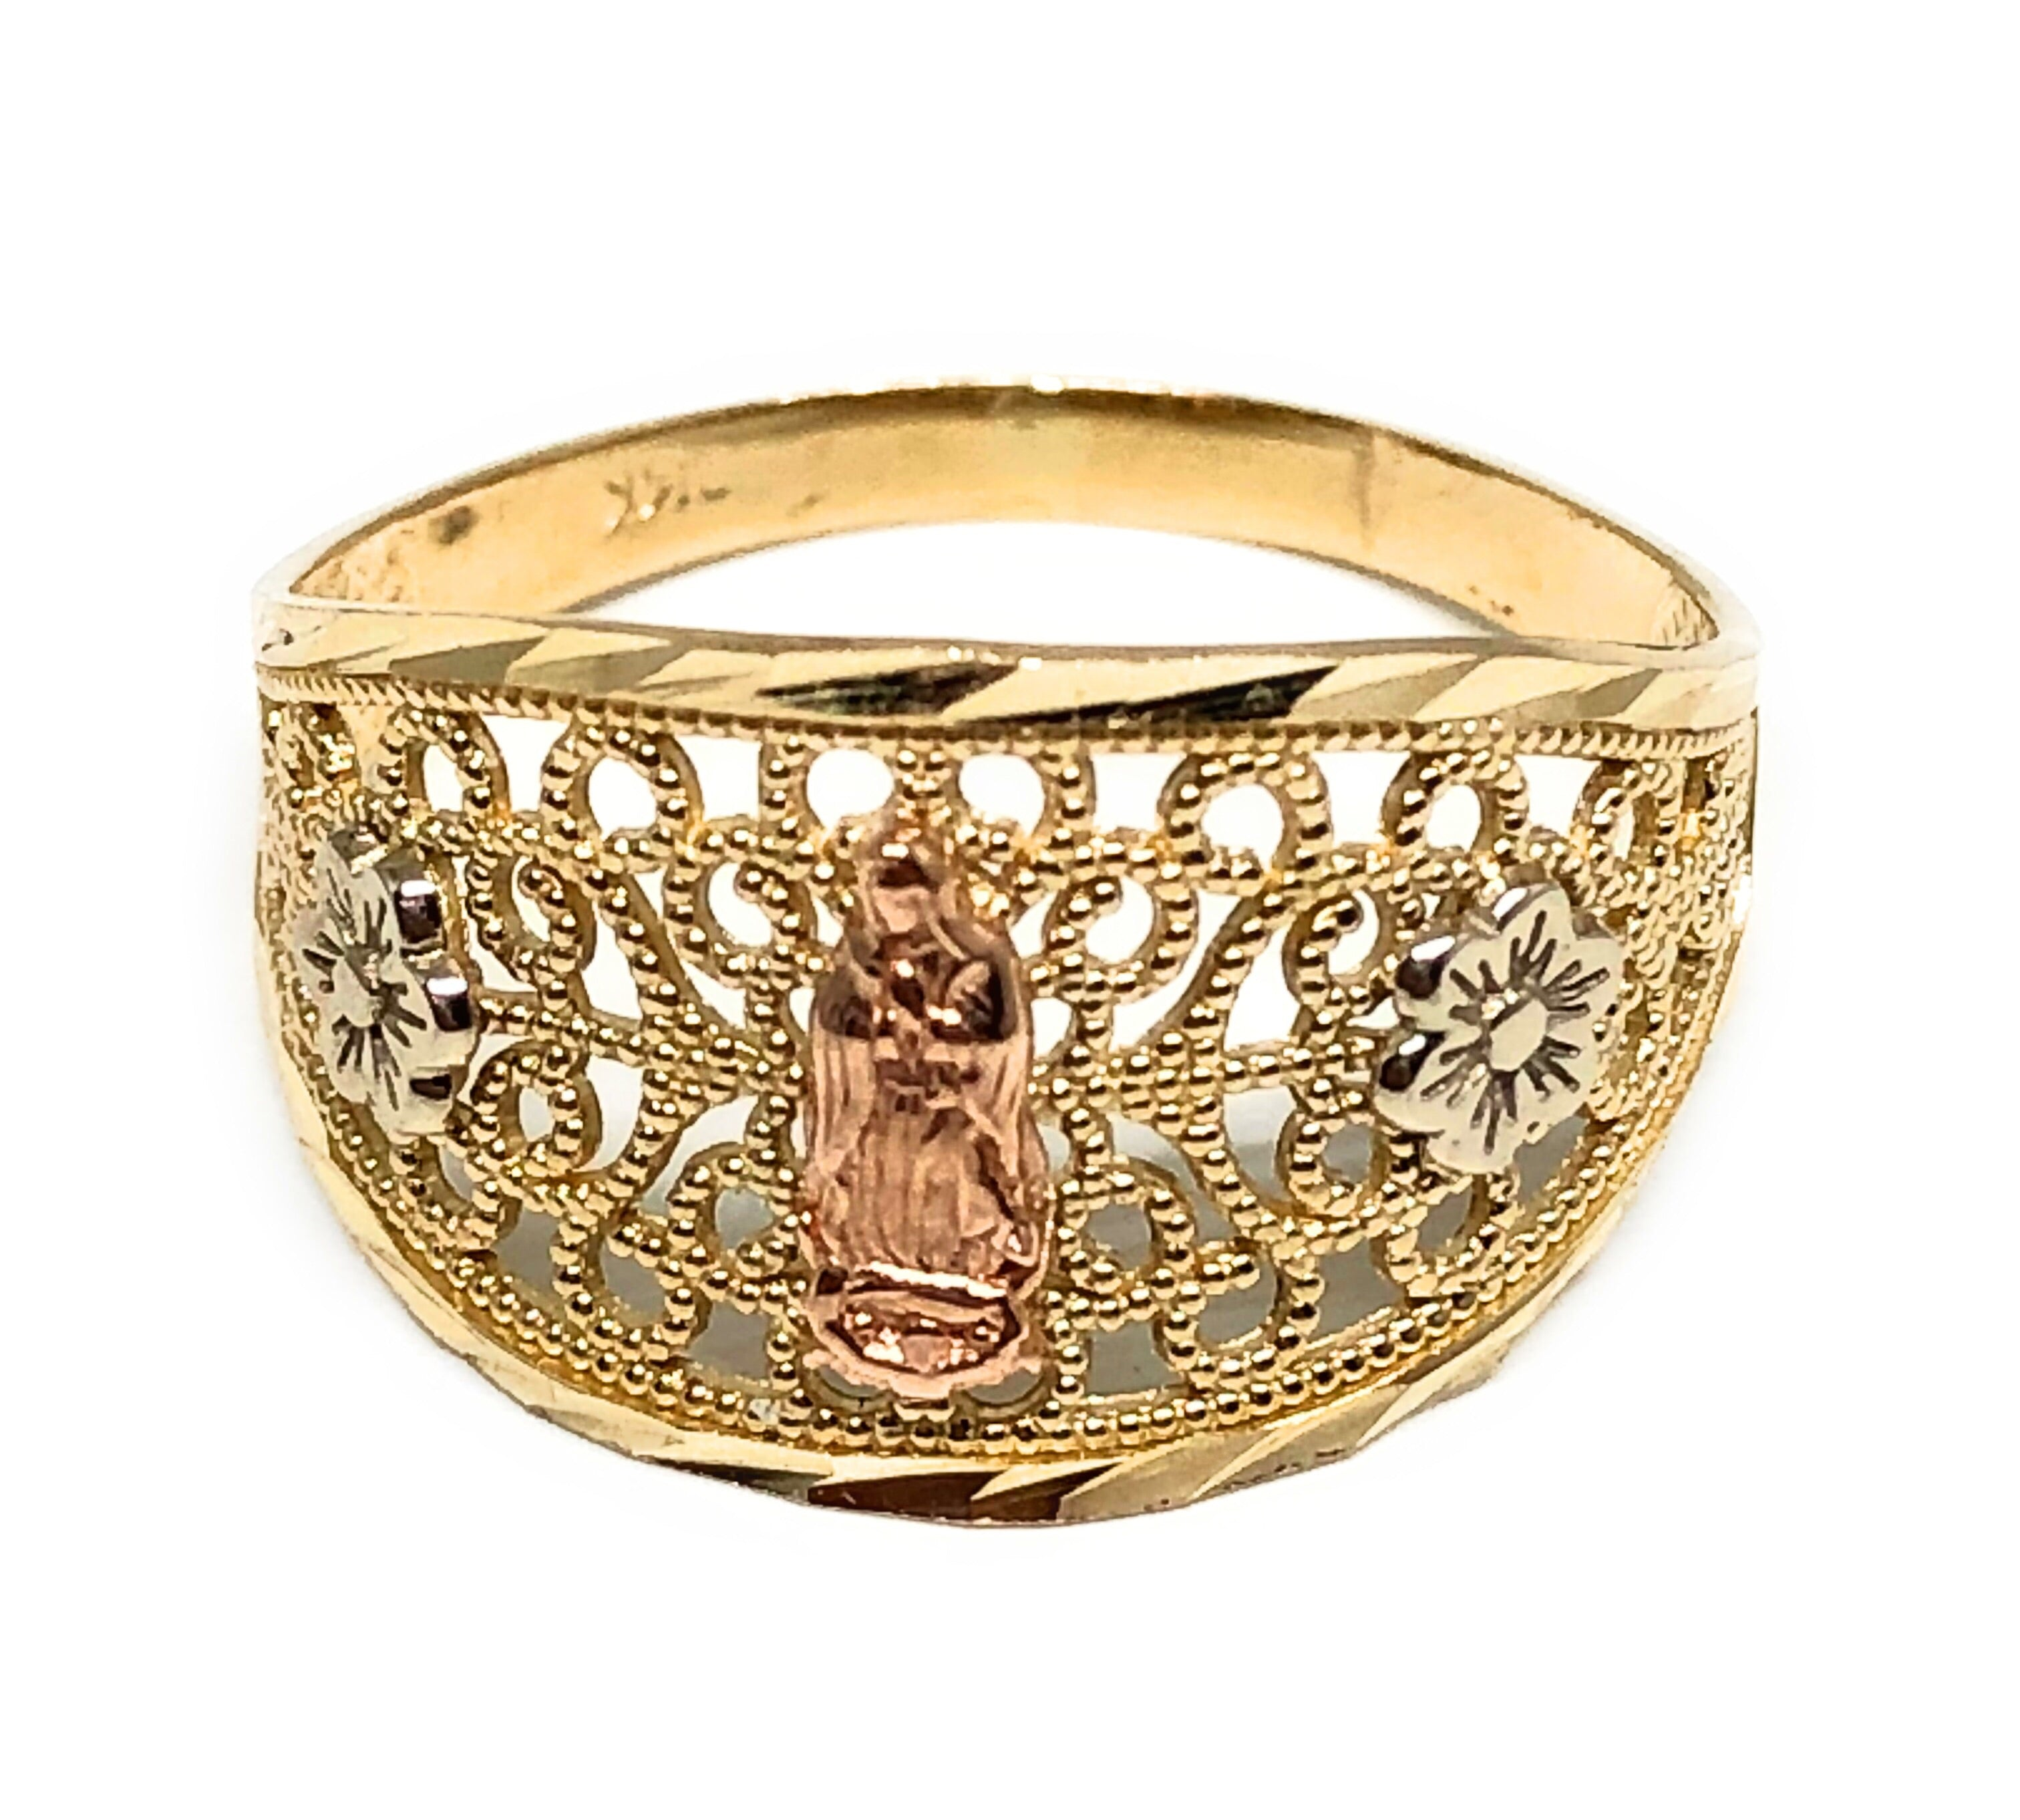 14k Solid Gold Tri-Color Virrgin Mary Filigran Flower Ring